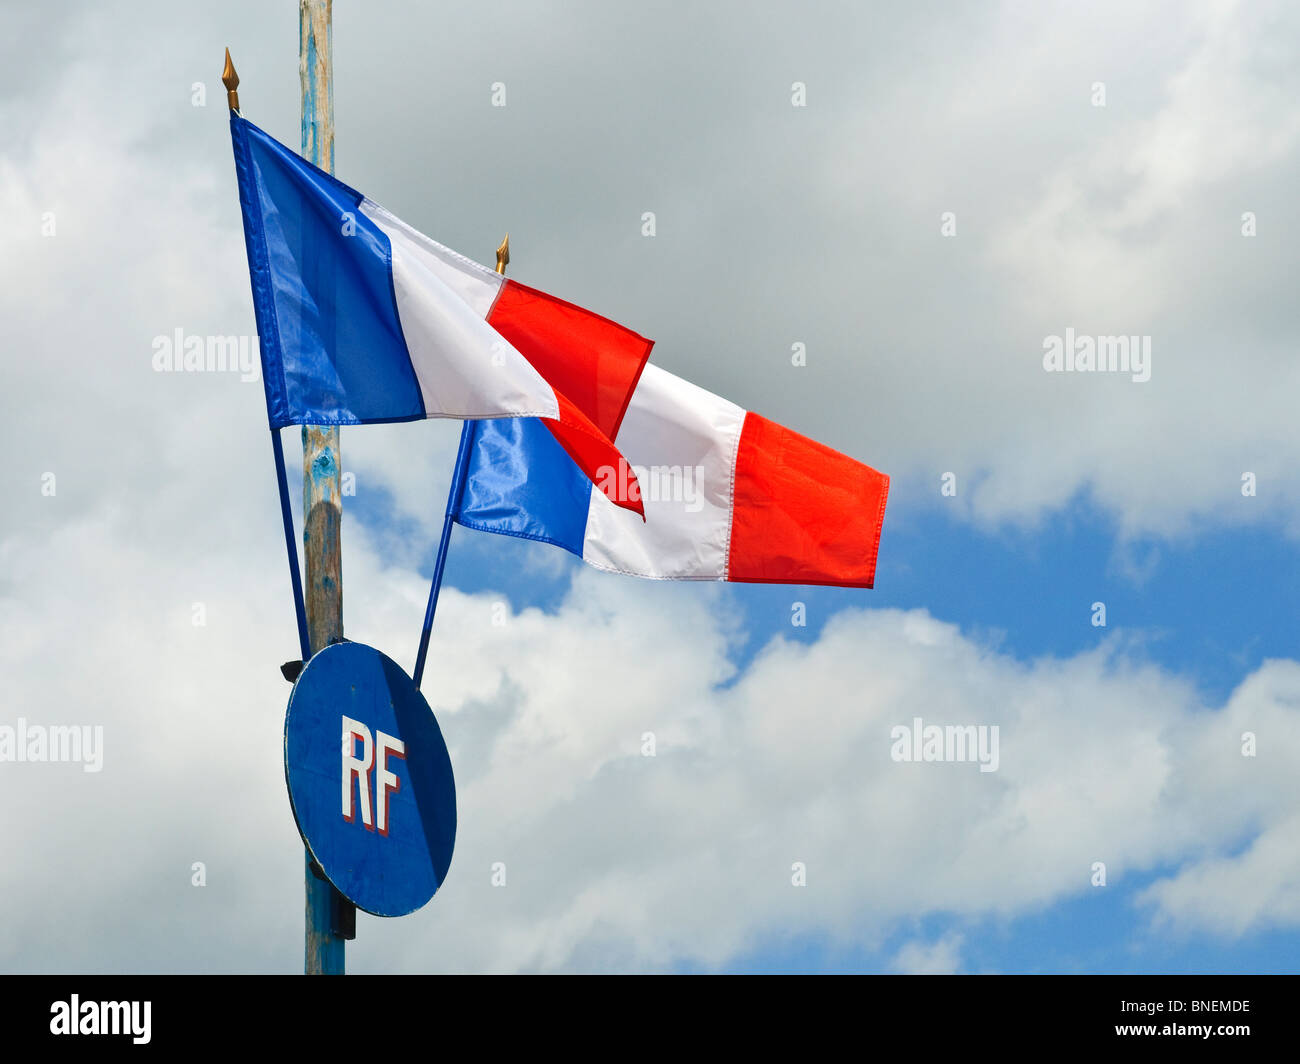 French Tricolour flags on flagpole. - Stock Image